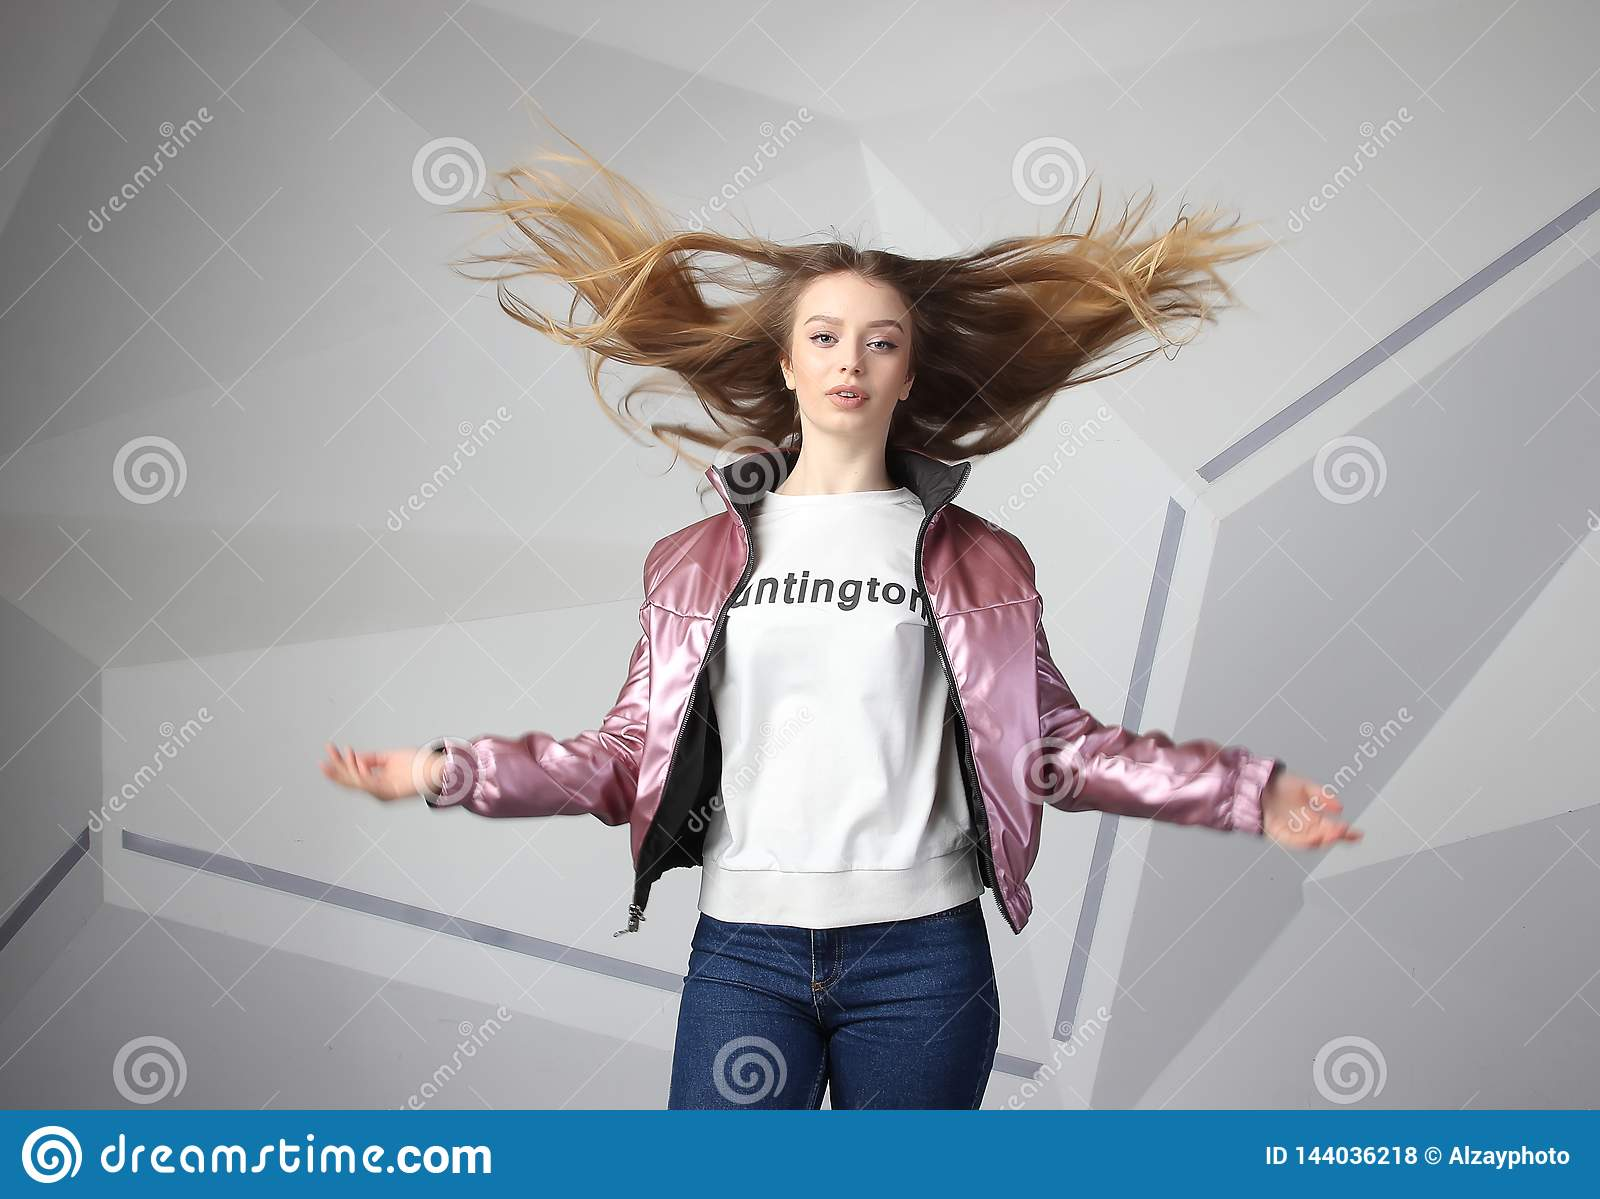 Screaming furious aggressive brunette woman with flying long hairs, flash studio portrait on modern wall